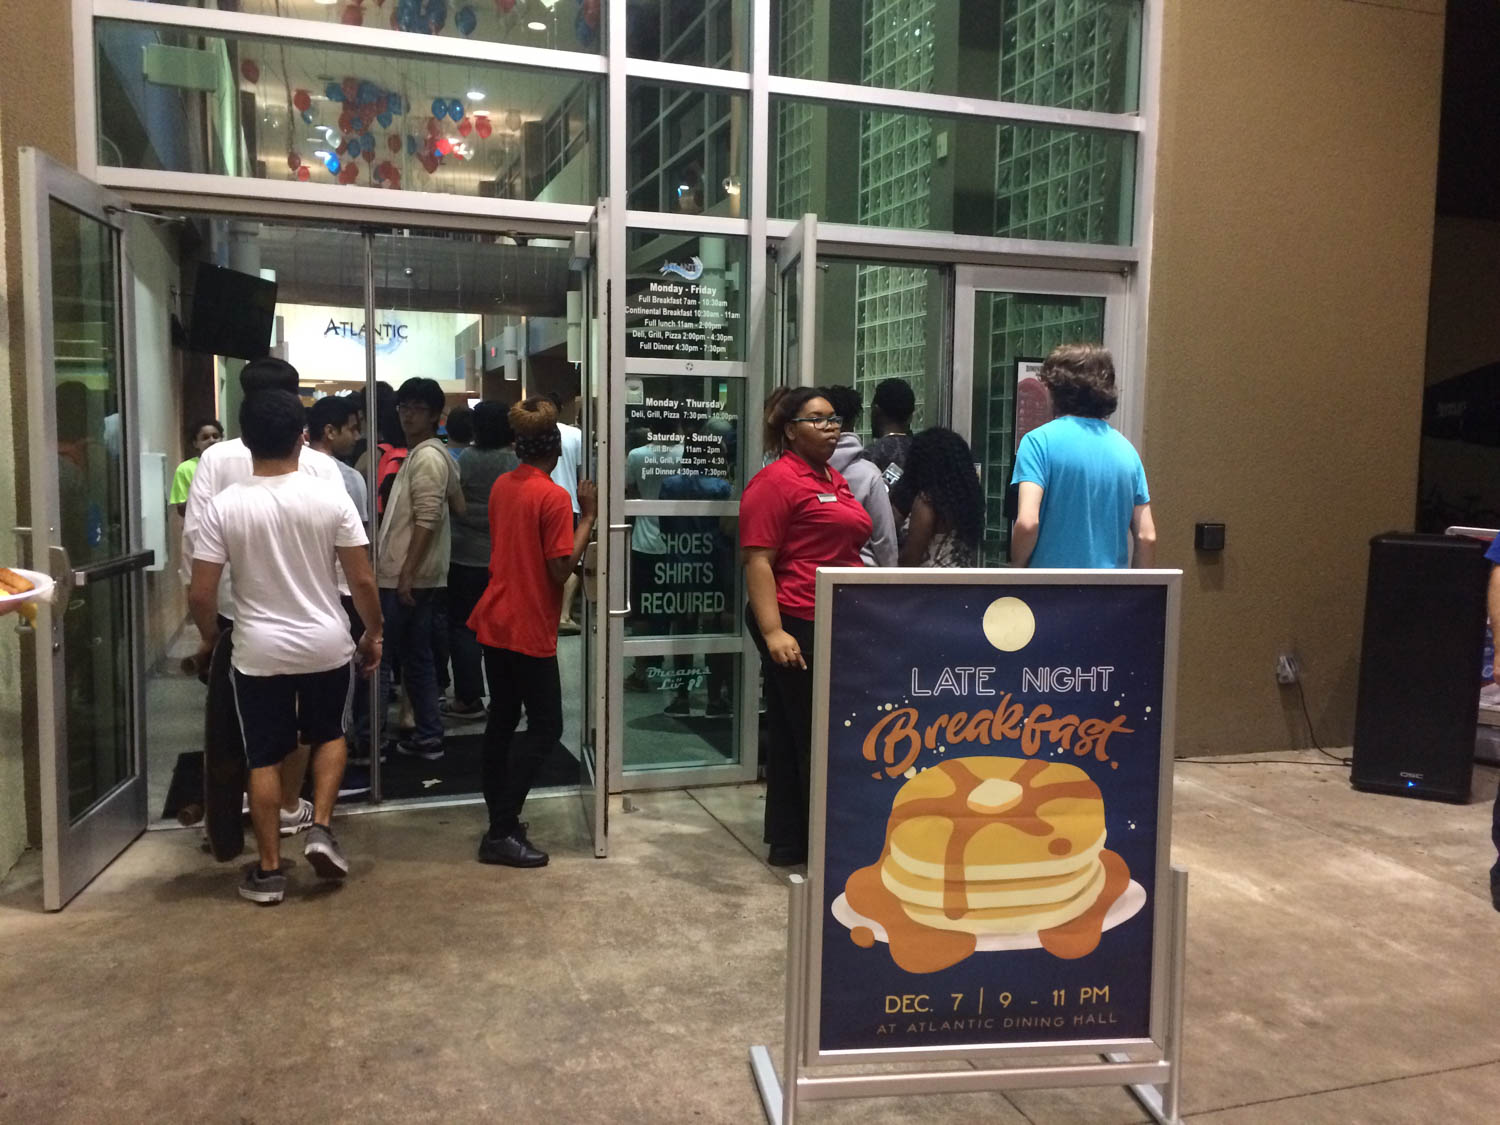 Students line up at the door of the the Atlantic Dining Hall to enter the late night breakfast hosted by Supplemental Instruction Wednsday. Ryan Lynch | Editor in Chief